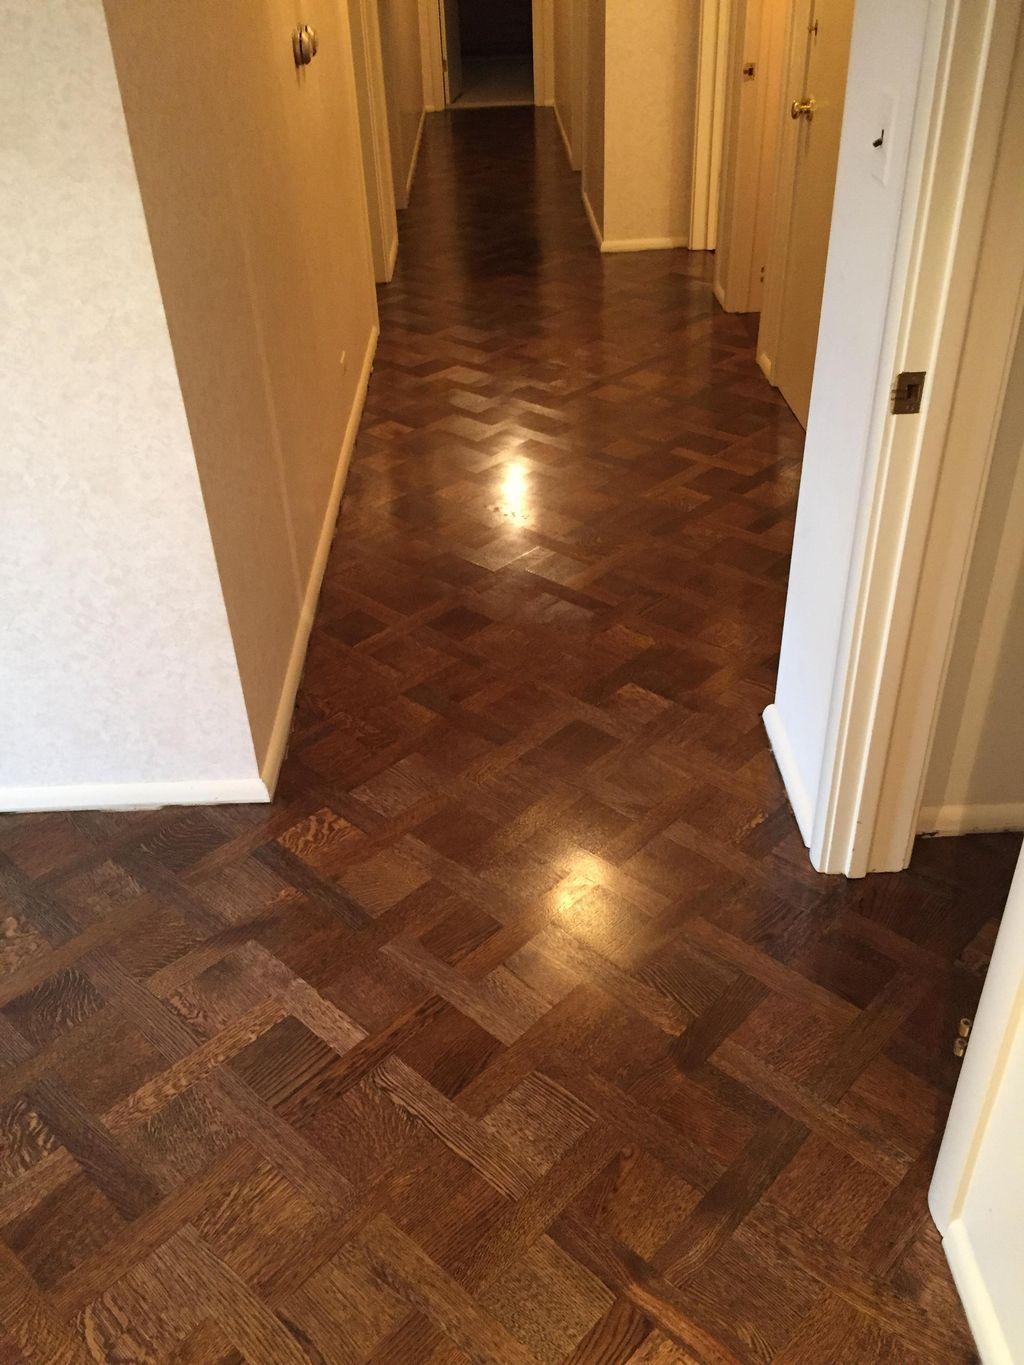 DK Flooring and More